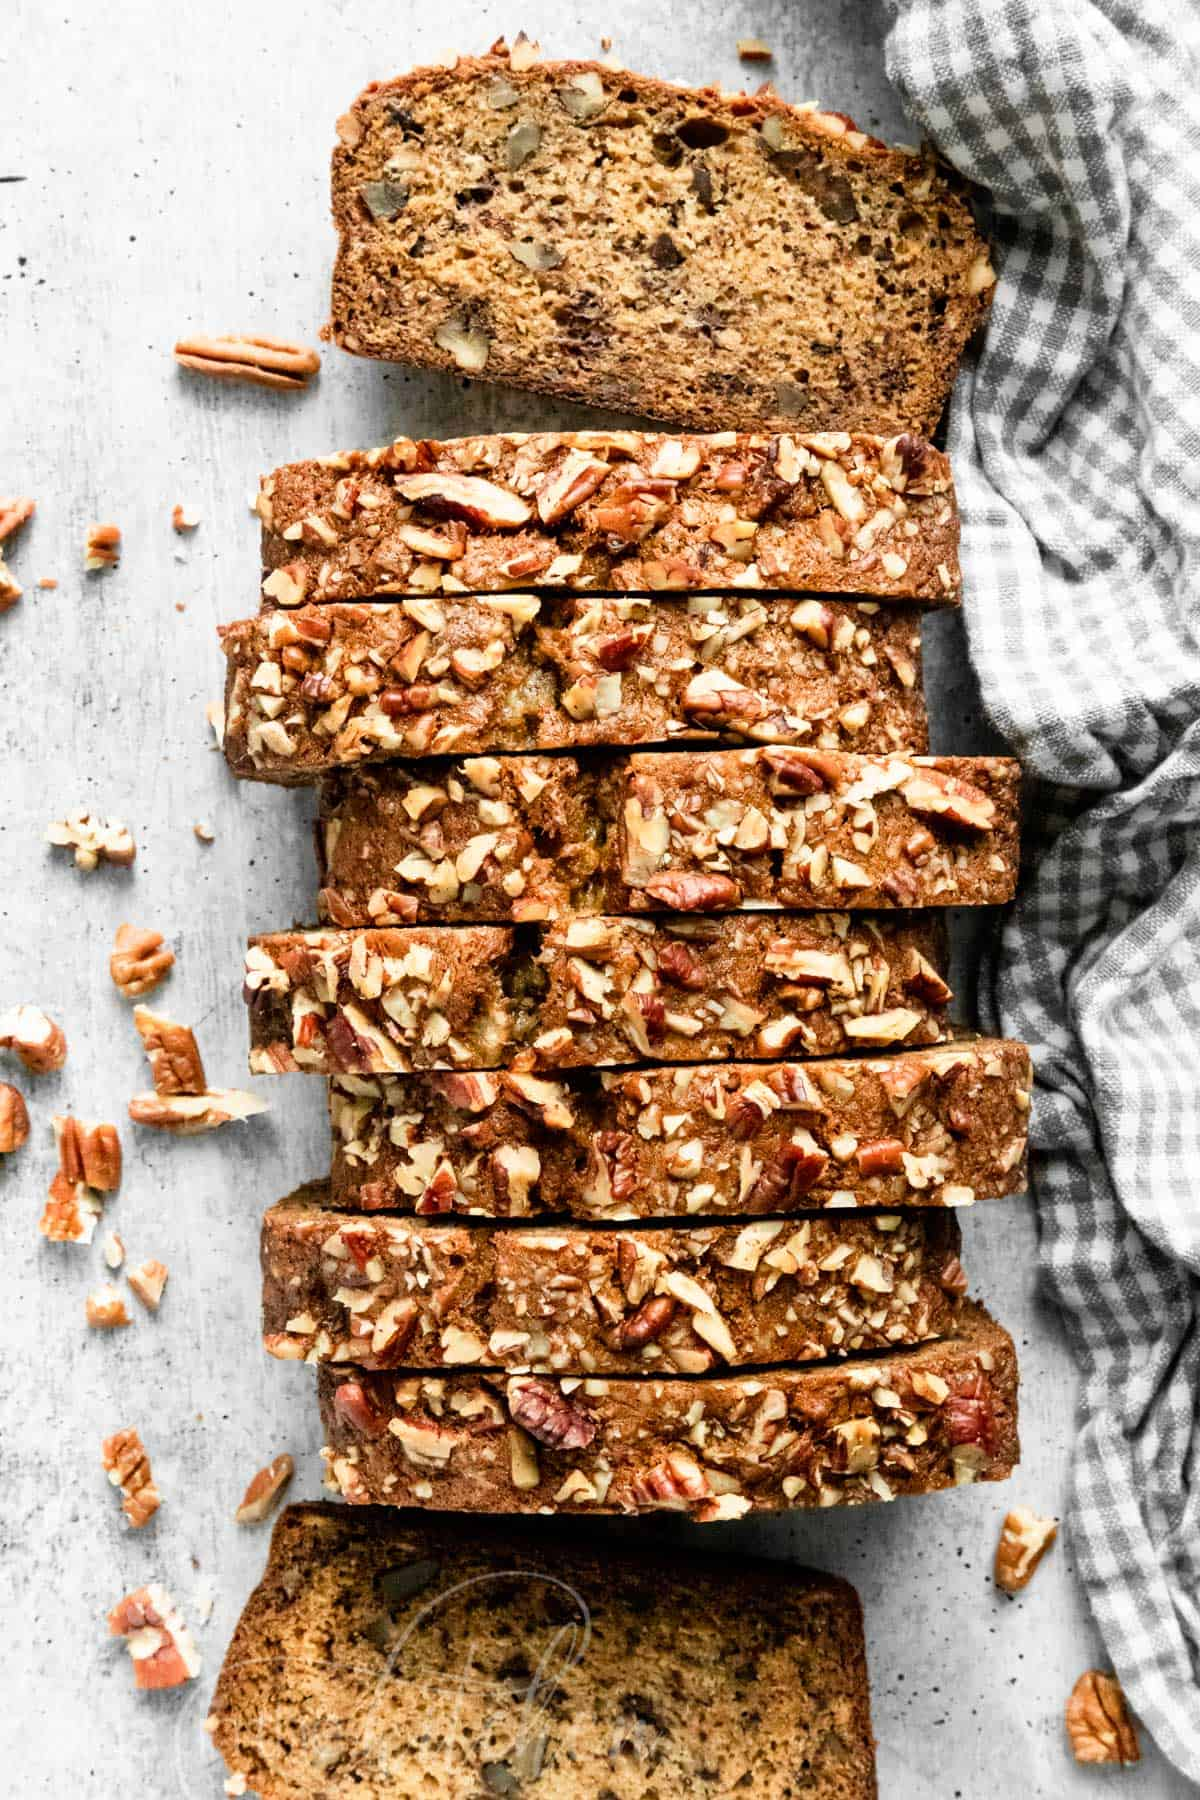 This super-moist Banana Nut Bread Recipe is loaded with bananas, pecans and incredibly soft crumb. It is simple to make and a great way to use those overripe bananas. This moist banana nut bread is so easy and makes a great breakfast on-the-go. #banananutbread #moistbananabread #bananabread #banananutbreadrecipe #bananabreadrecipe #nutbread #olgainthekitchen